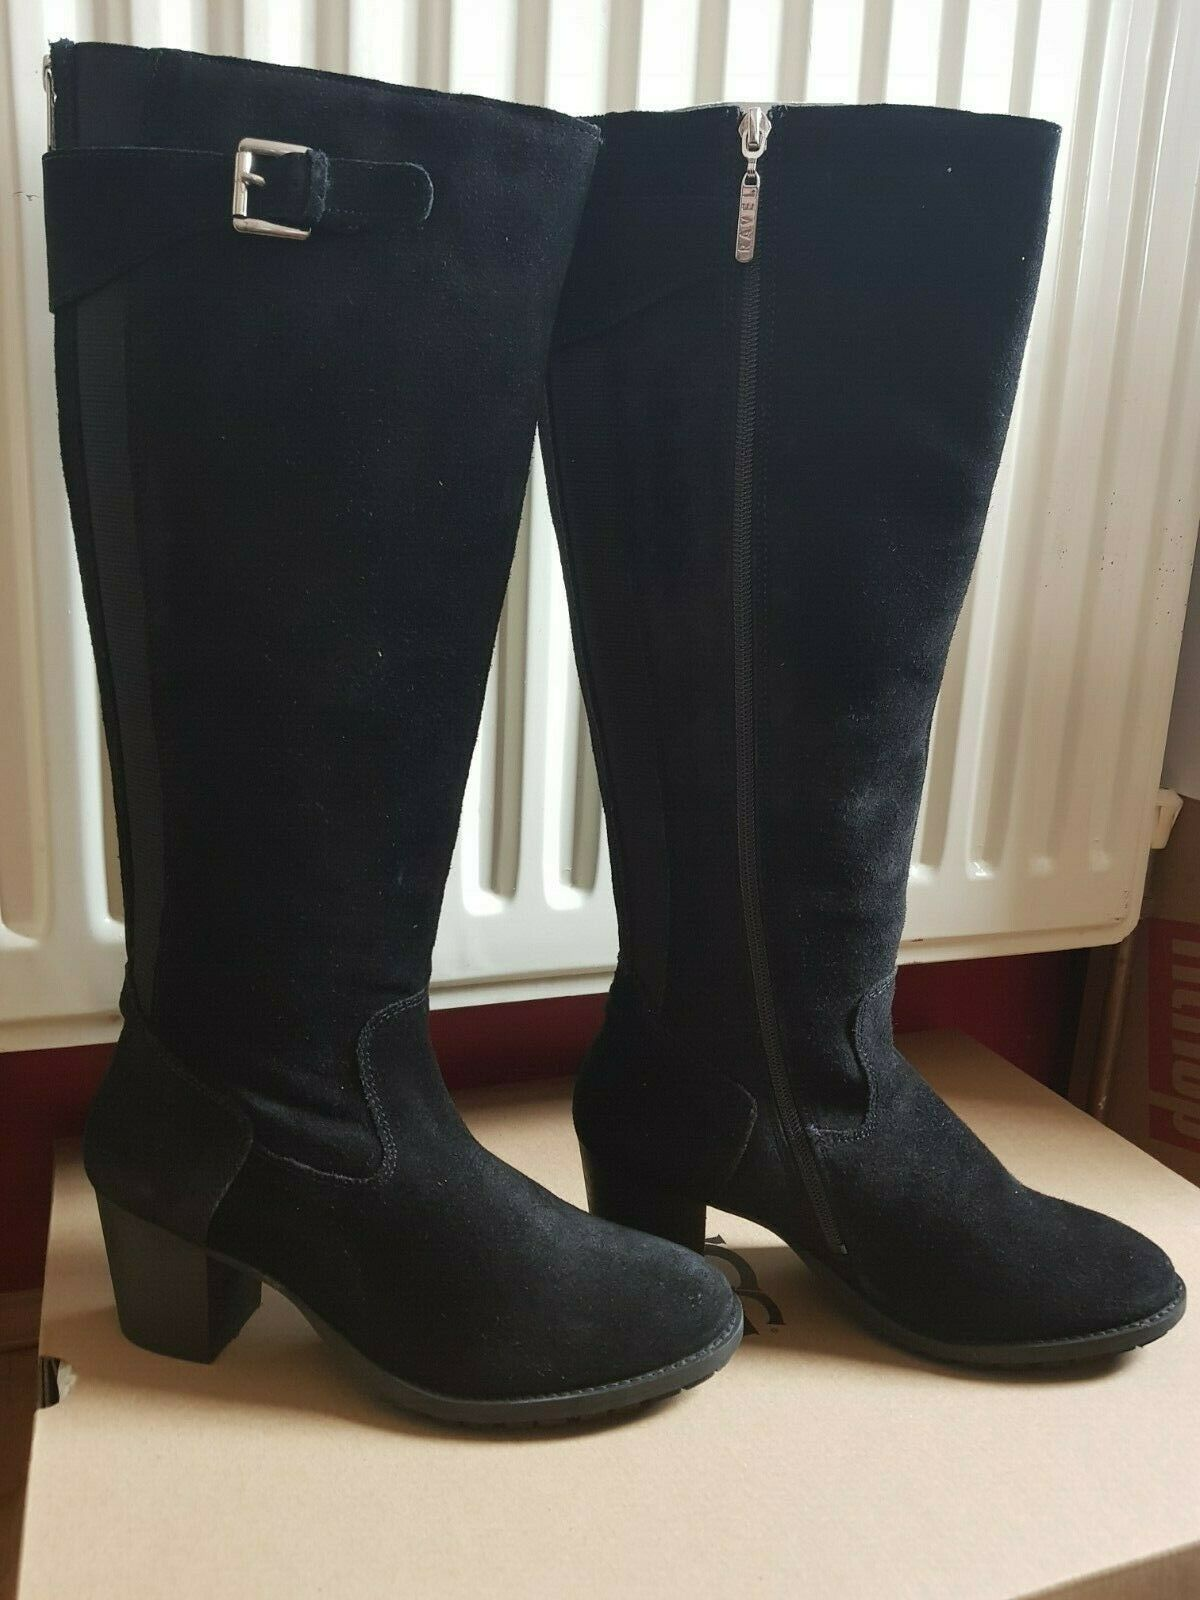 RAVEL Knee Length Suede Leather Boots - BLACK - UK7 - BNIB